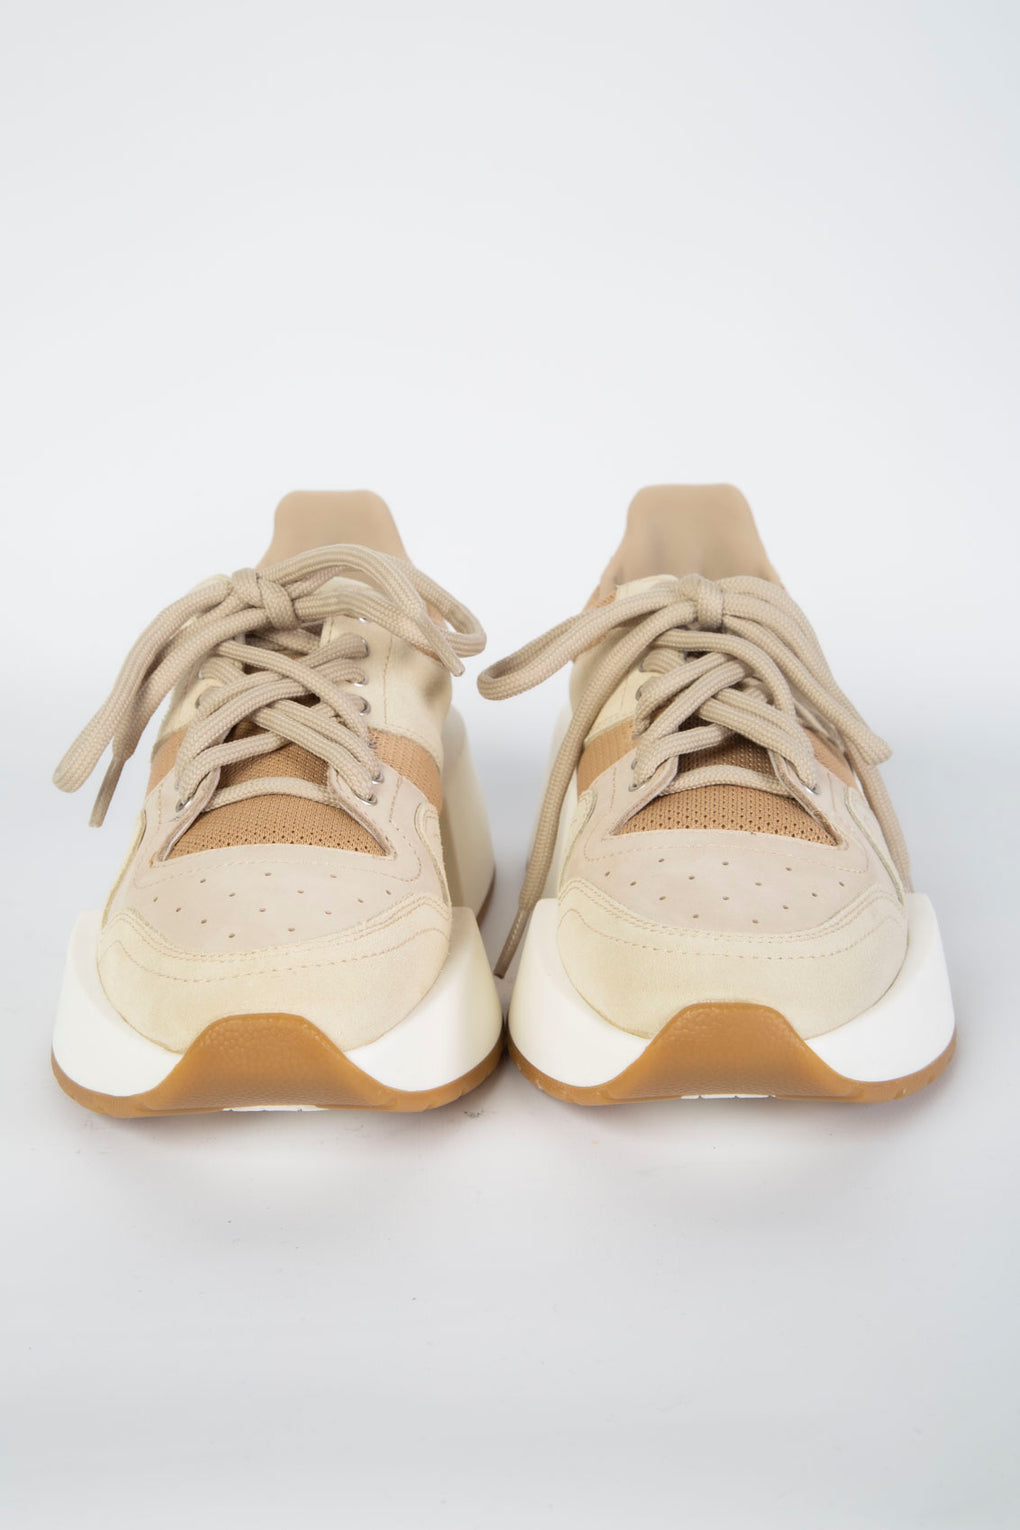 Idun-Saint Paul-MM6-Maison Margiela-Sneakers-Colour Block Sneakers